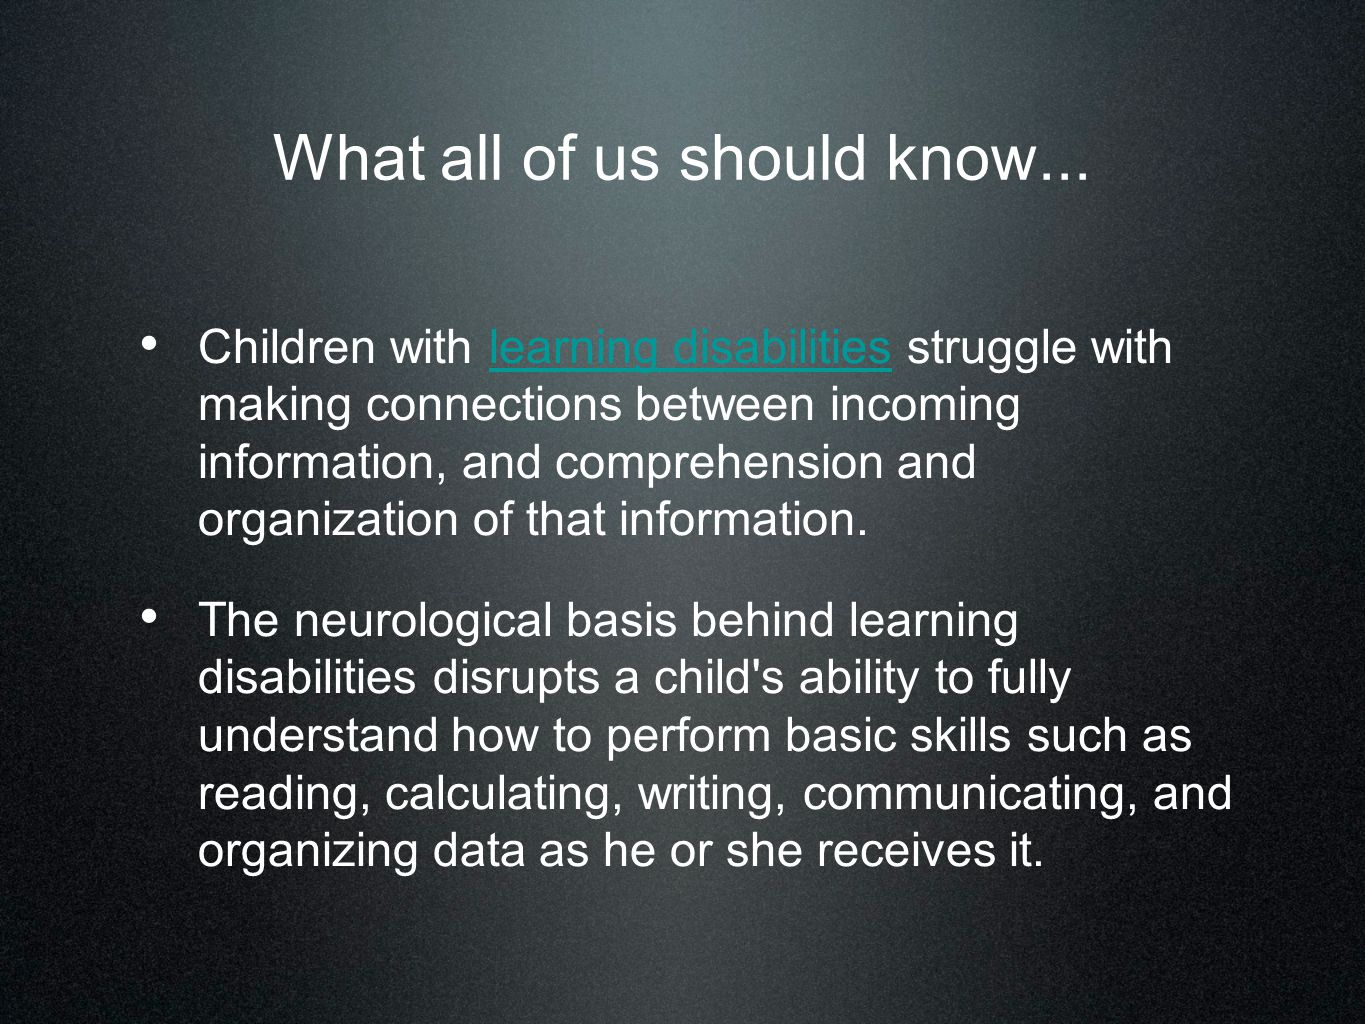 What all of us should know... Children with learning disabilities struggle with making connections between incoming information, and comprehension and